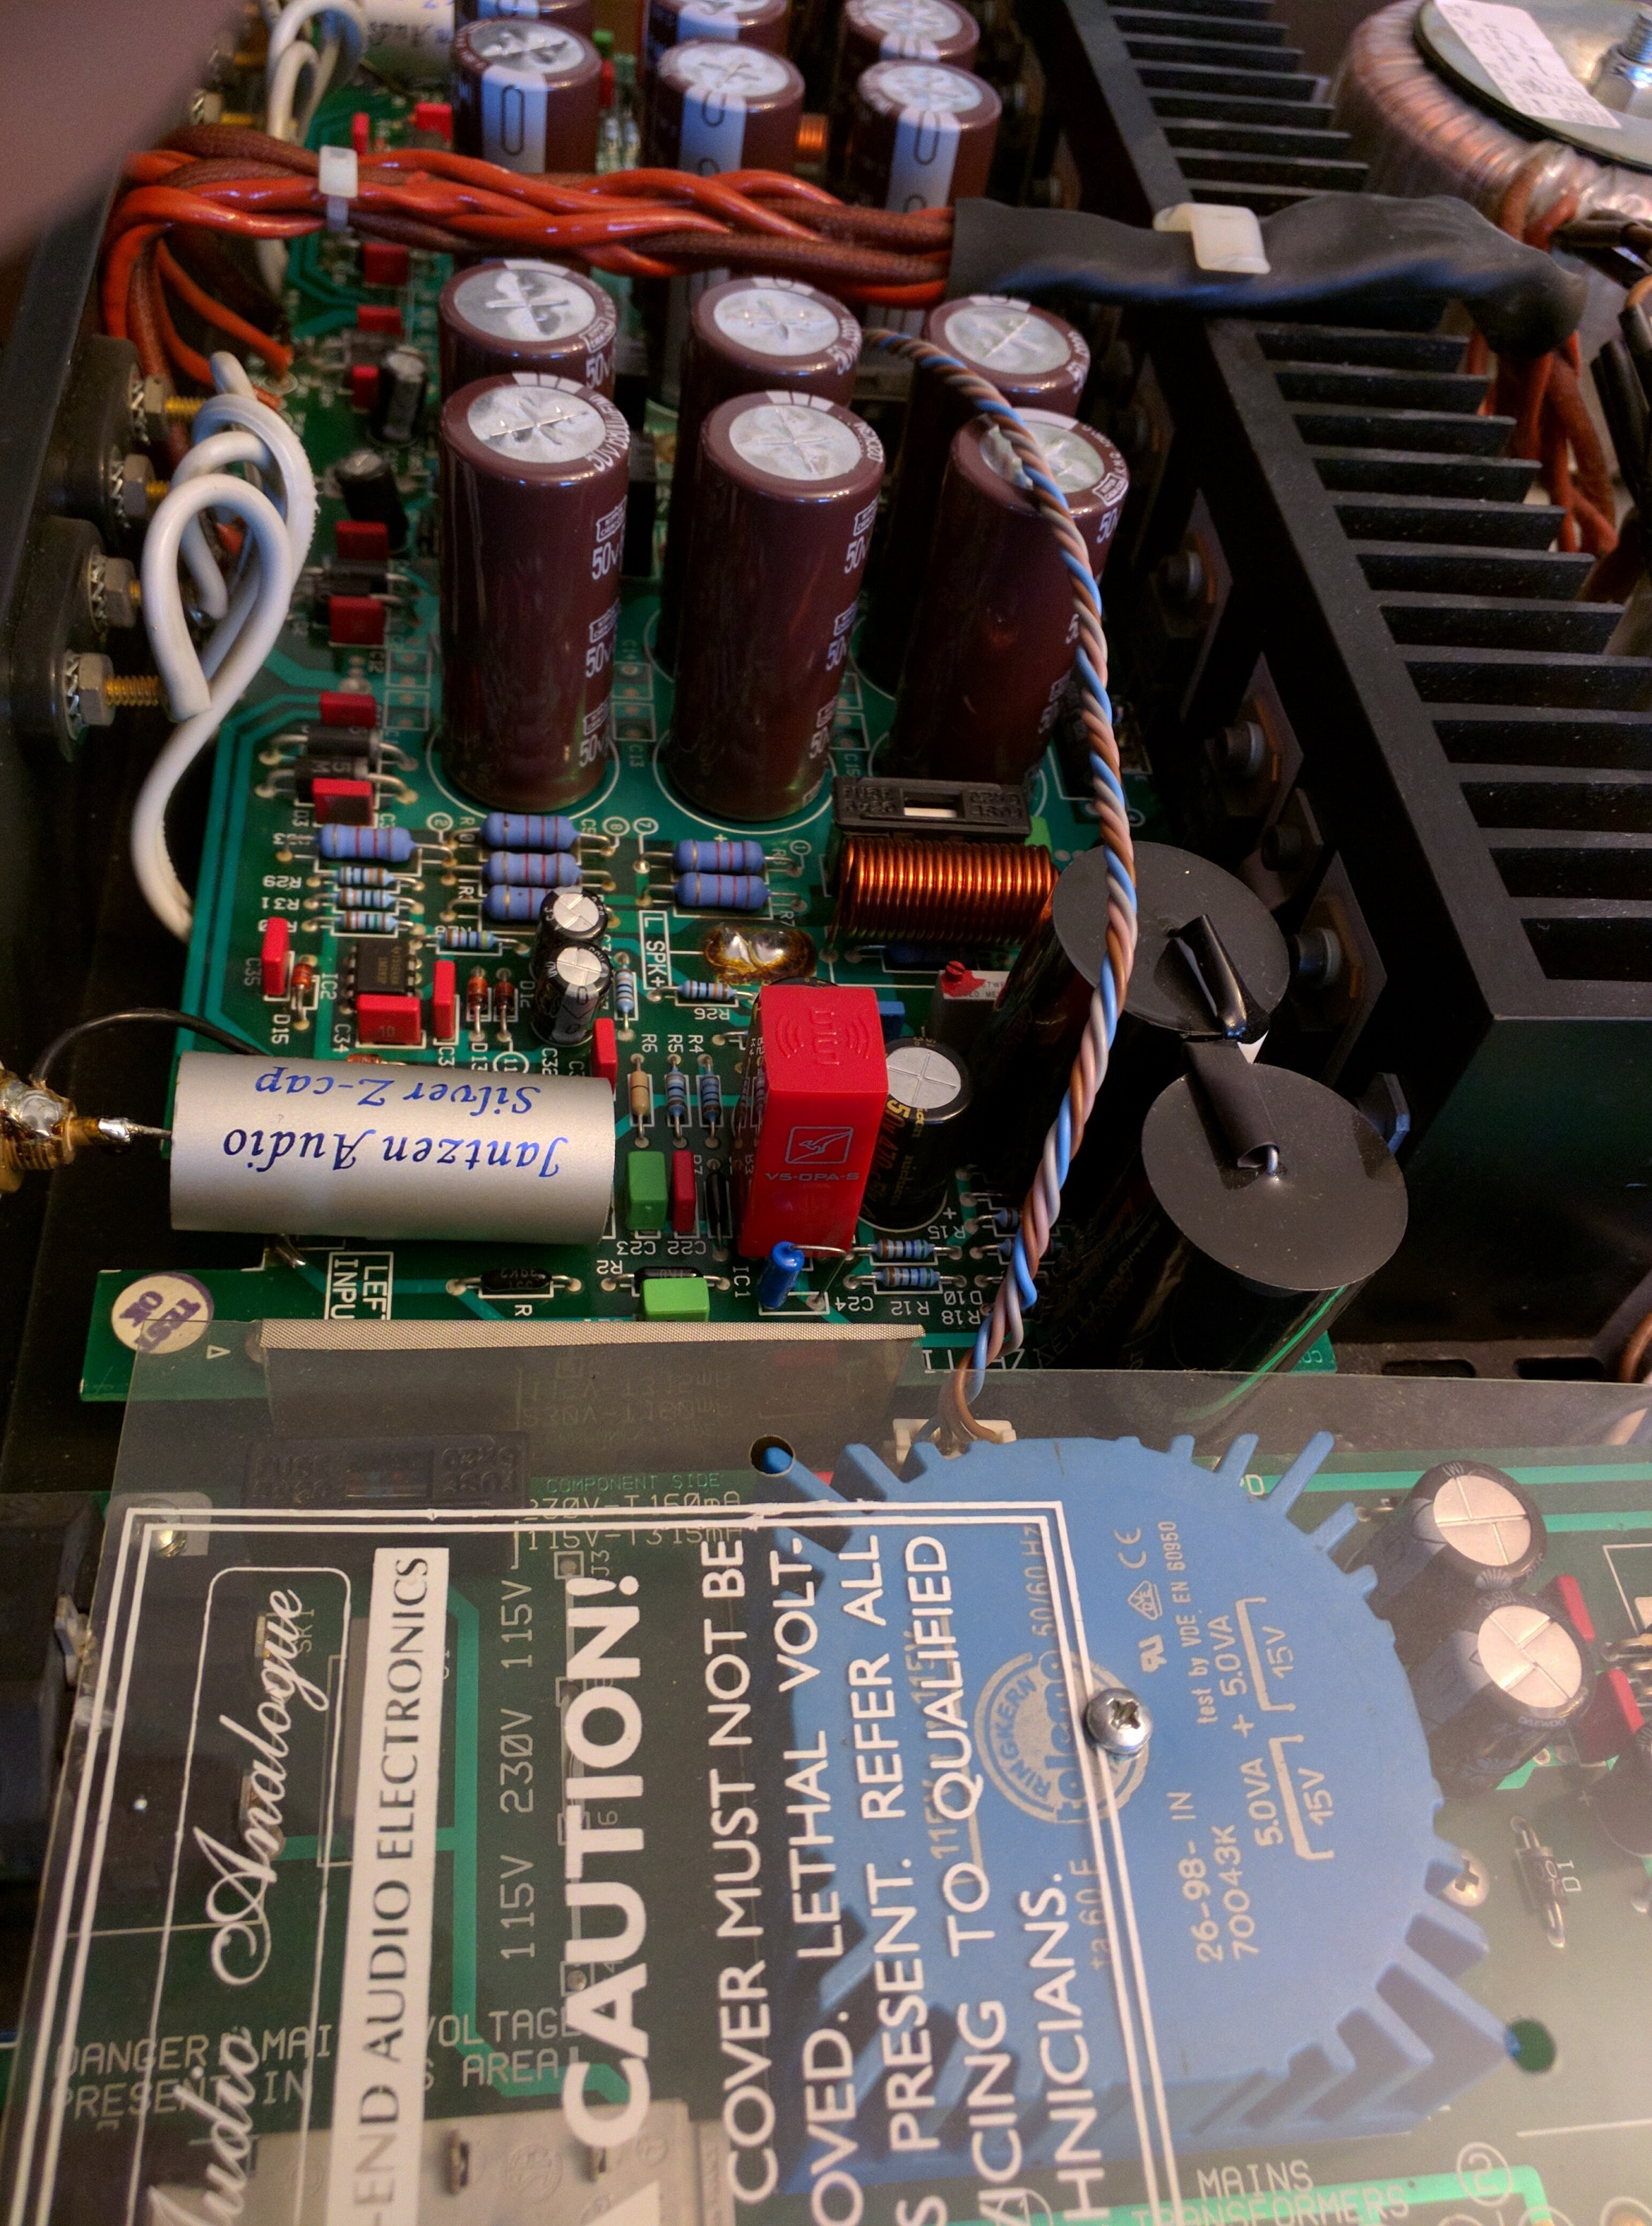 V5 Ss Opamp Page 10 Burson Audio Noninverting Amplifier Analog Integrated Circuits Electronics Analogue Donizetti Power Upgrade With Op Amp